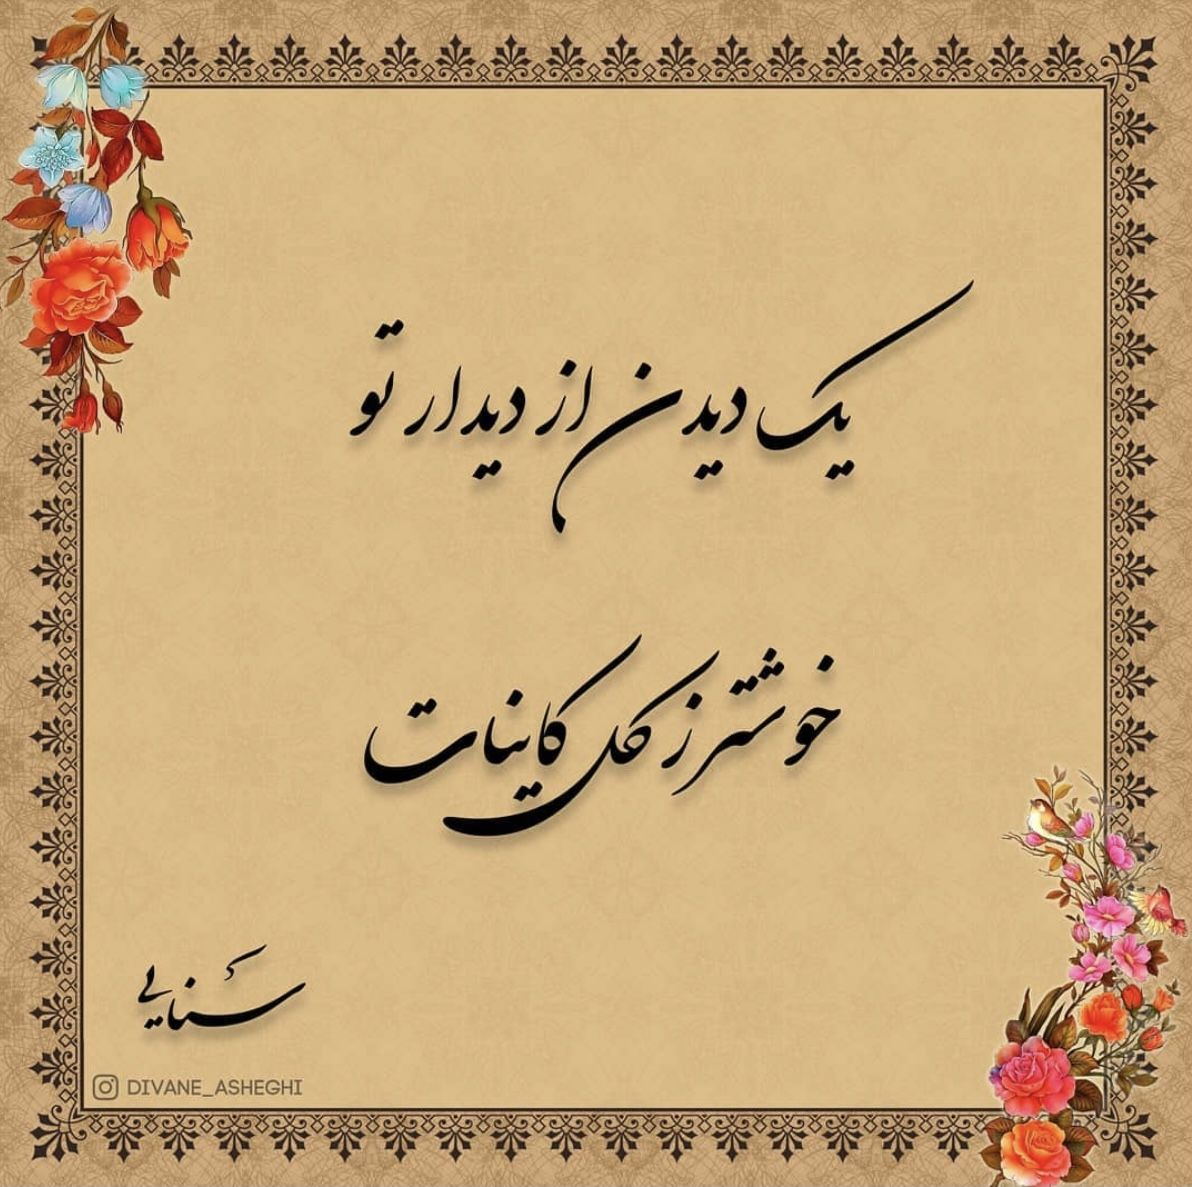 Pin By R0s3 On Persian Poems In 2020 Persian Poem Famous Poems Poems